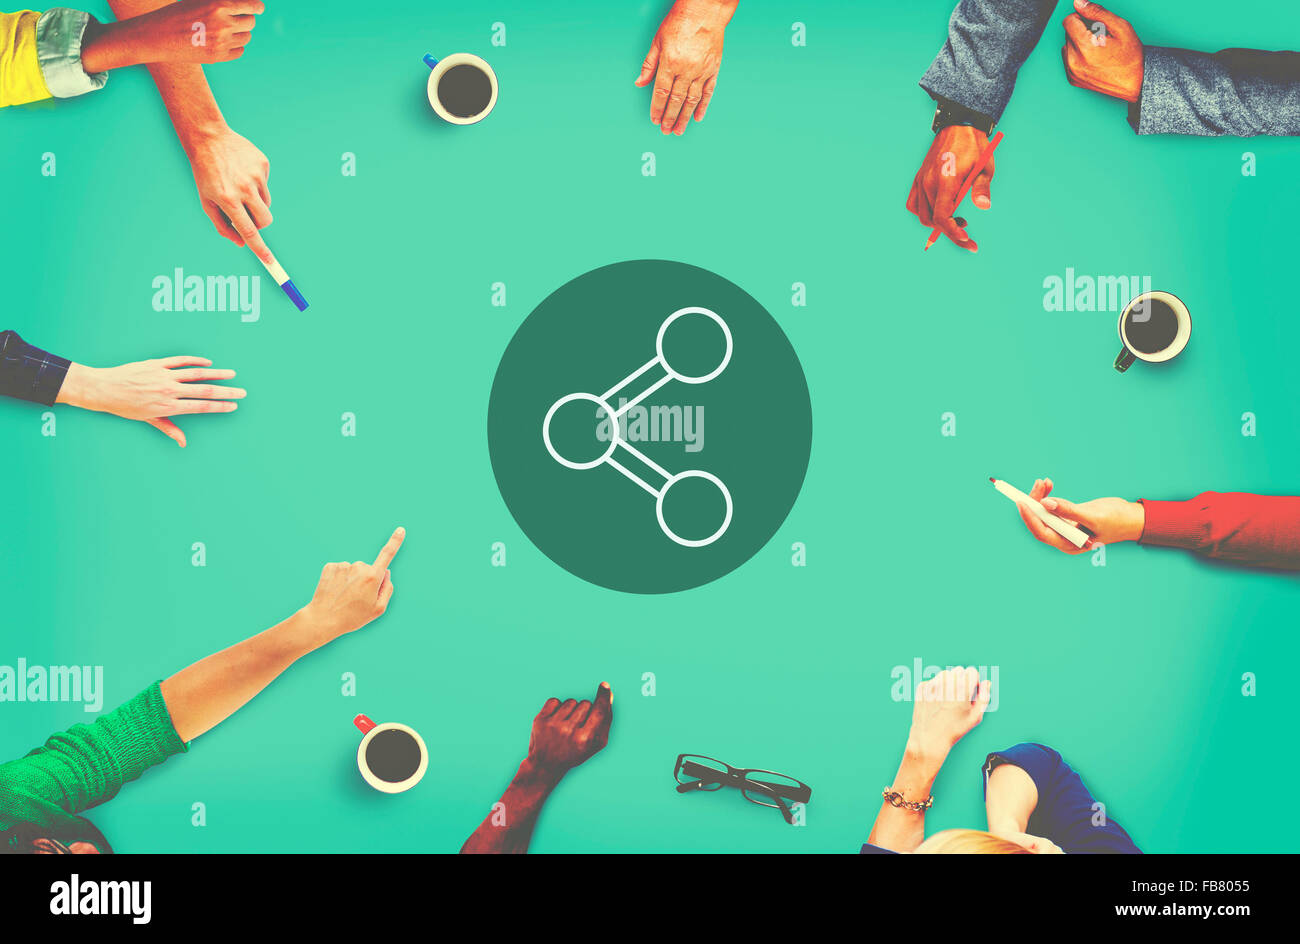 Share Connection Technology Sharing Global Communications Concept Stock Photo